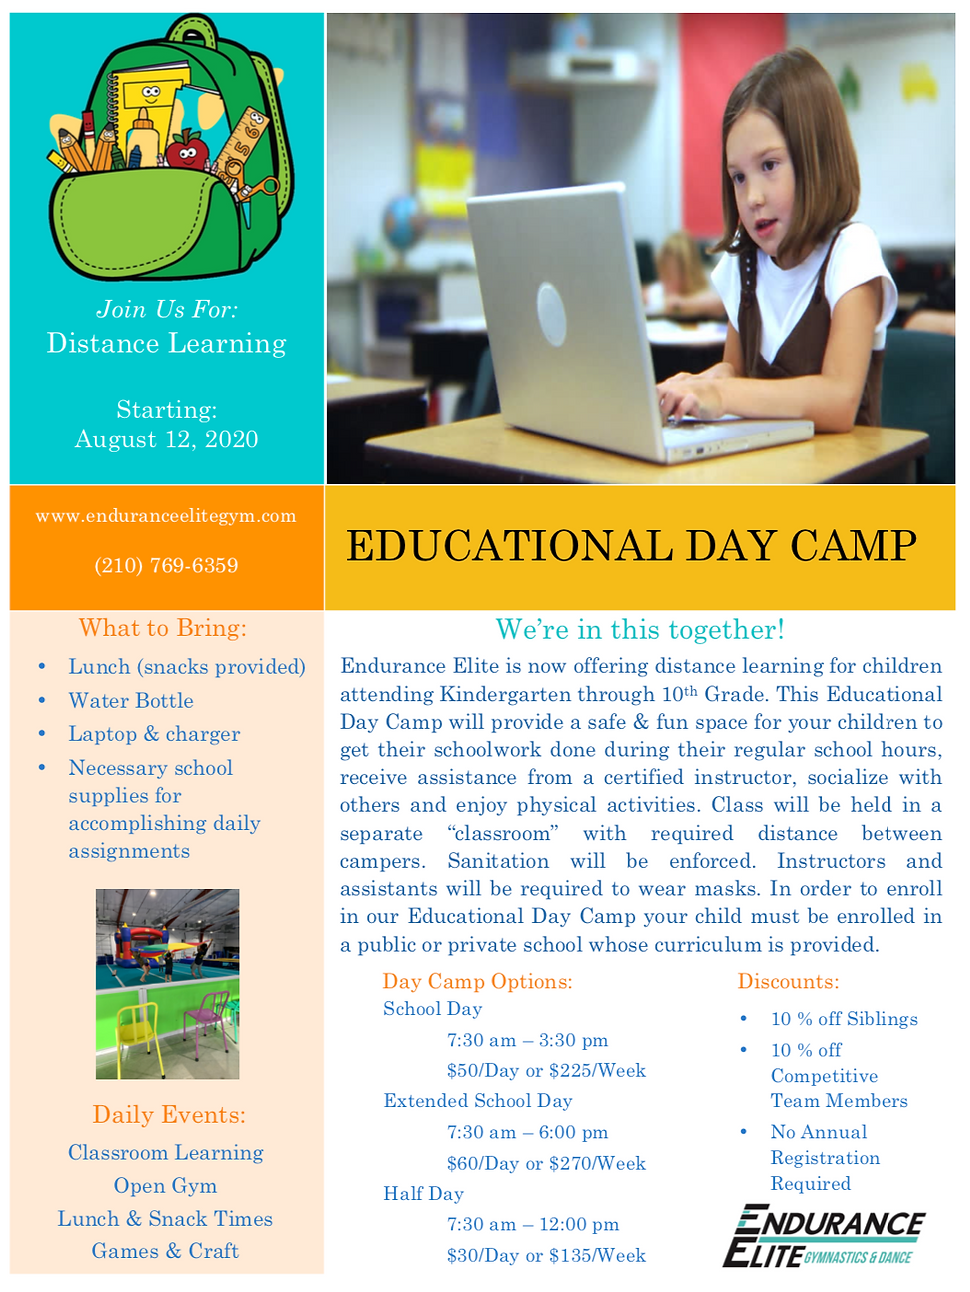 educational day camp flier 2020.png